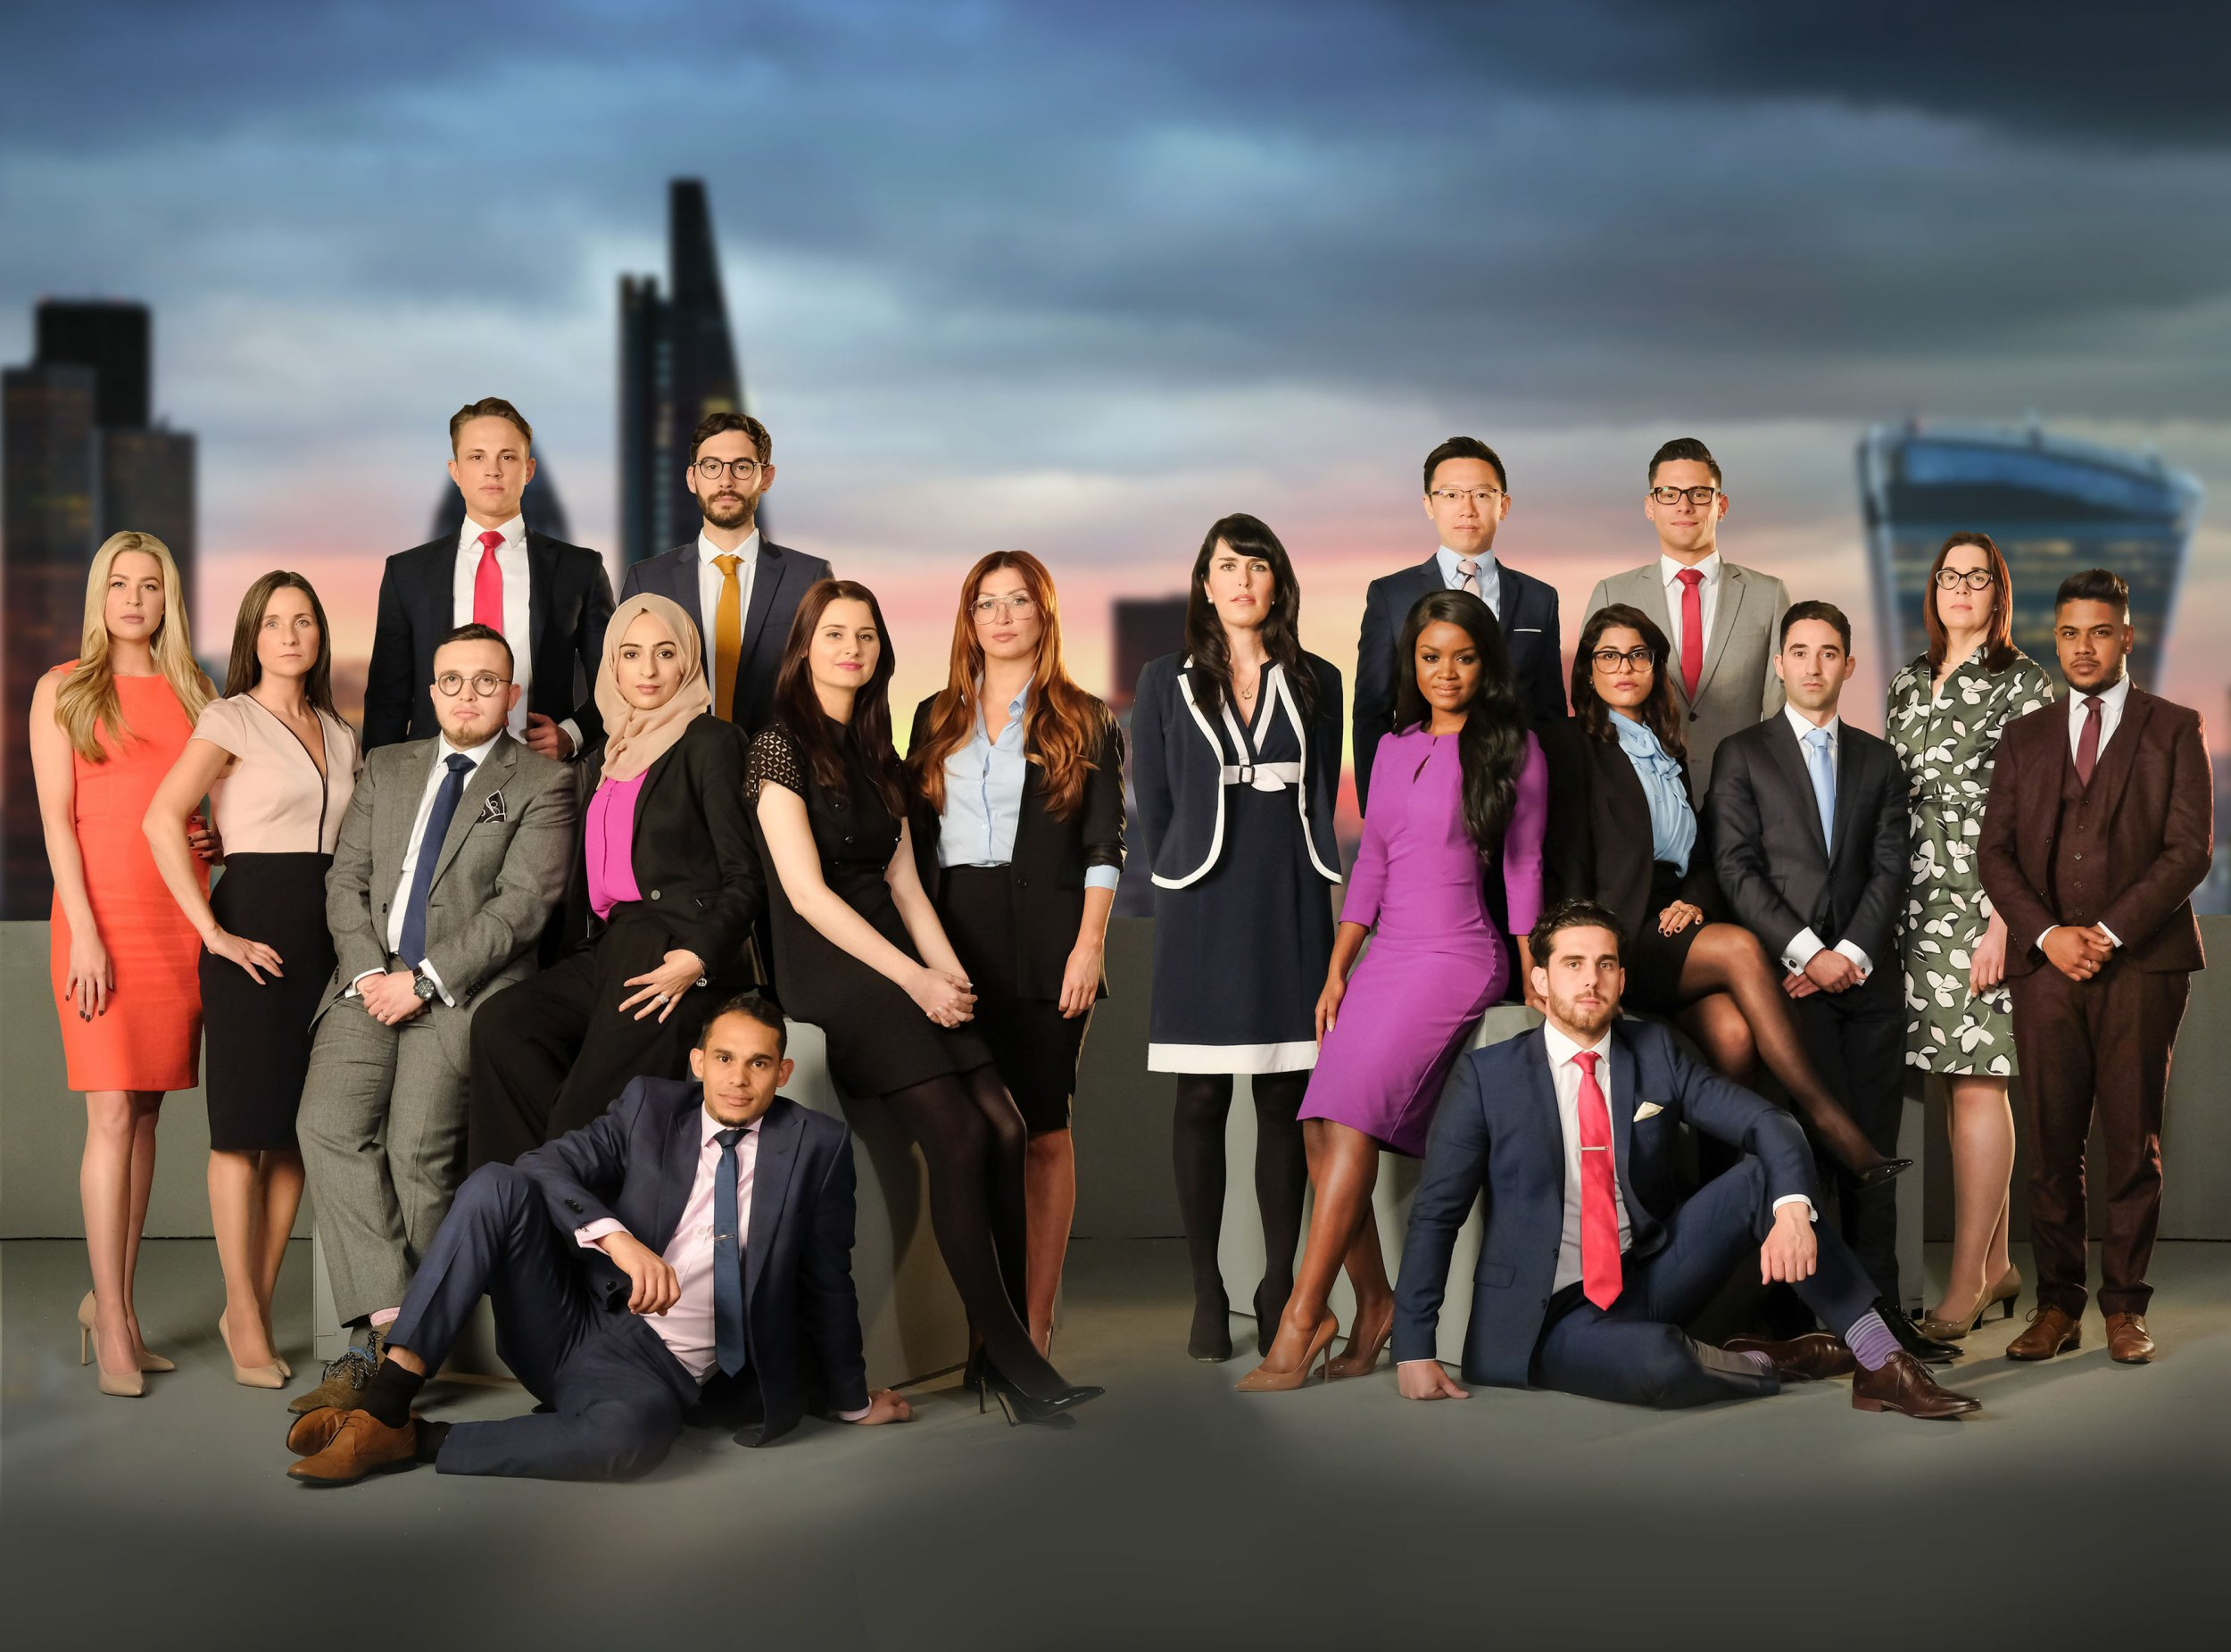 20 funniest, cringey and most obnoxious quotes from this week's The Apprentice